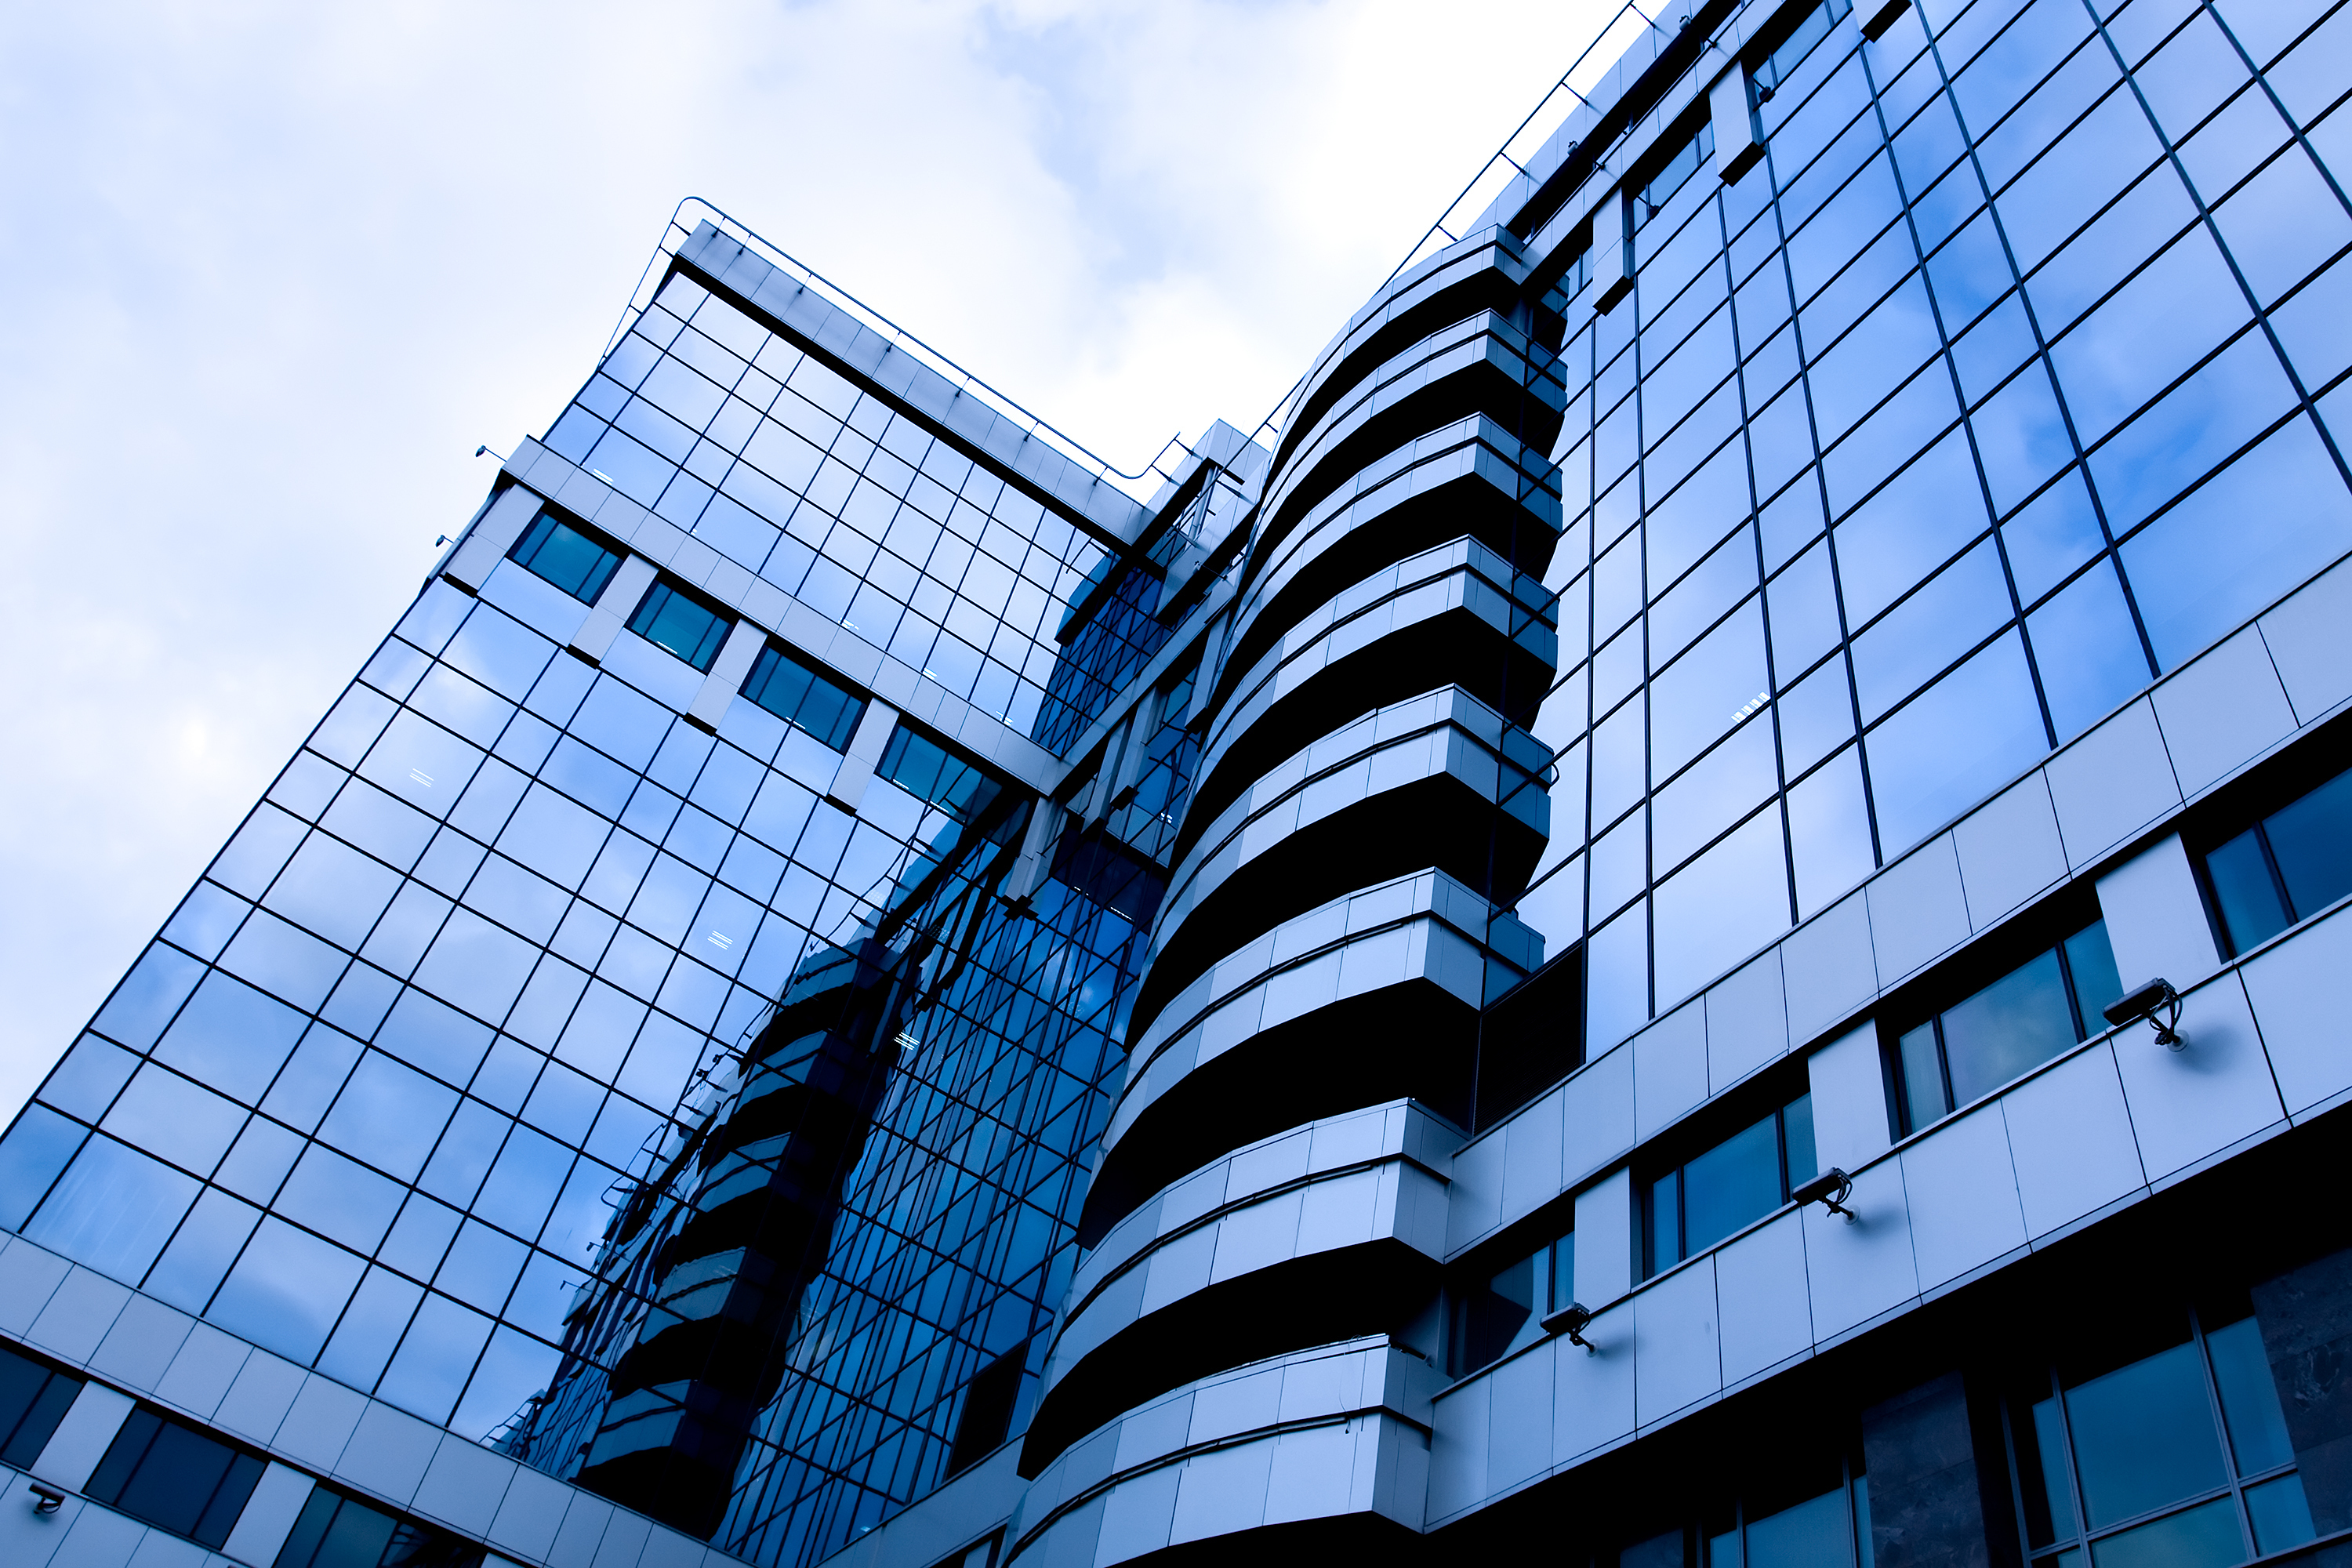 commercial property Commercial real estate is property, typically leased out to tenants, that is used solely for business purposes.